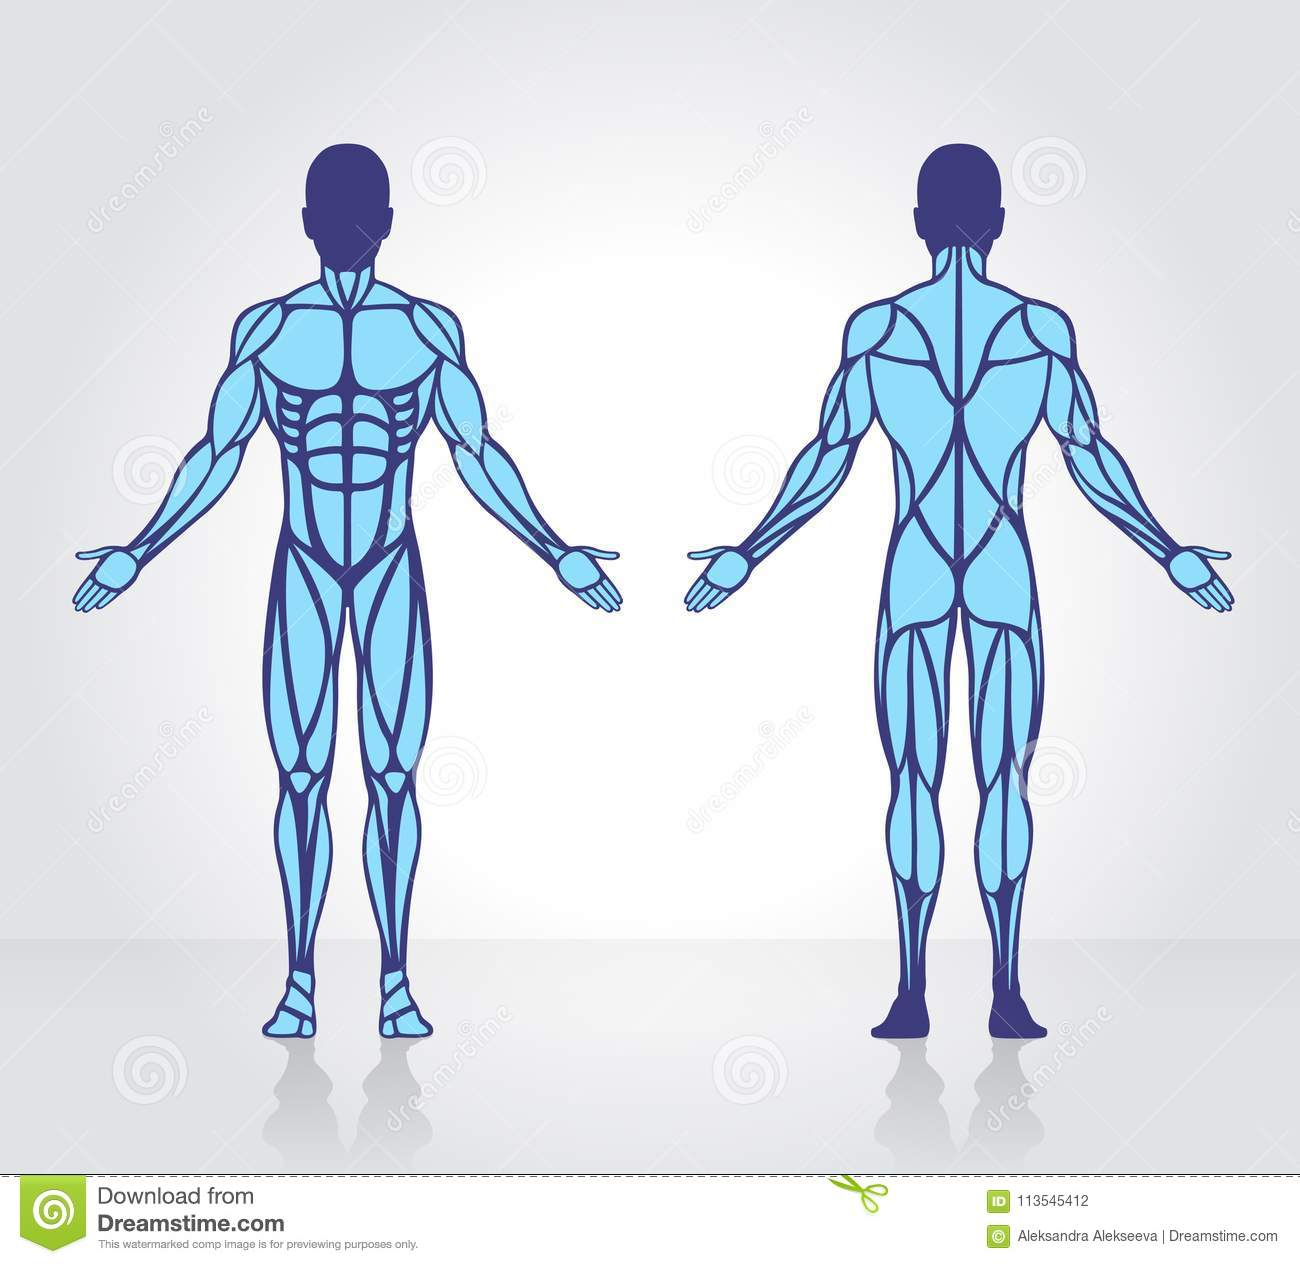 Human Muscles Anatomy Model Vector Stock Vector Illustration Of